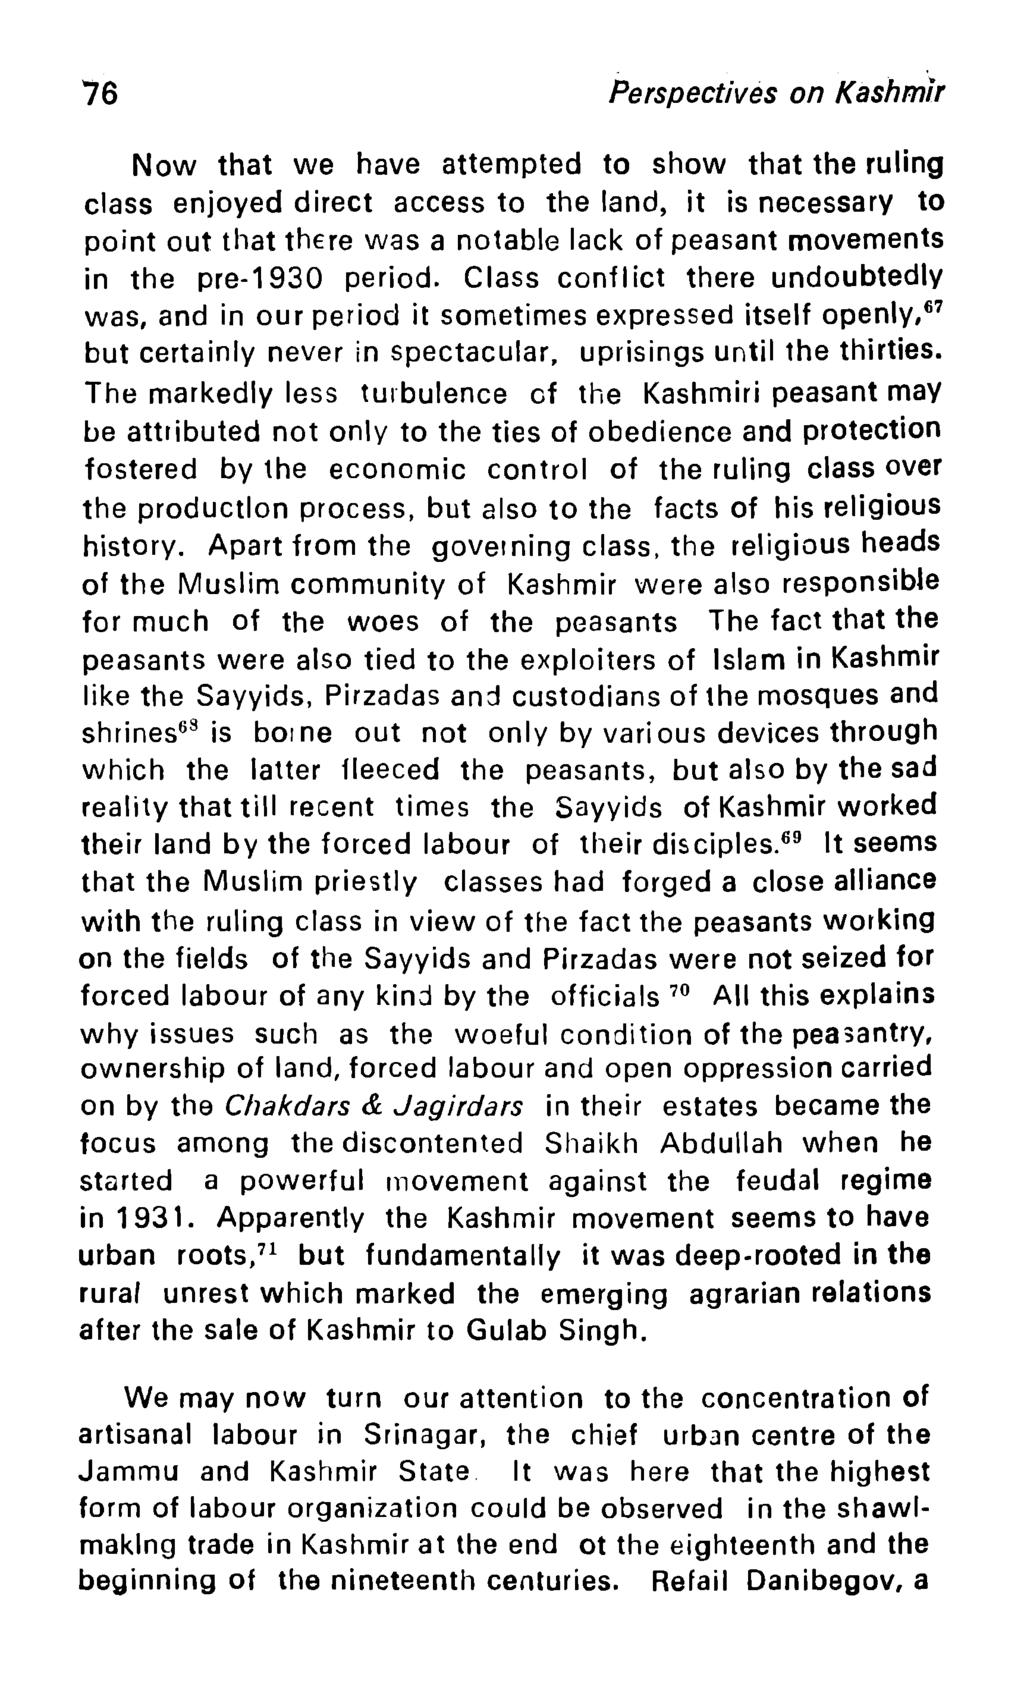 Perspectives on Kashmir - PDF